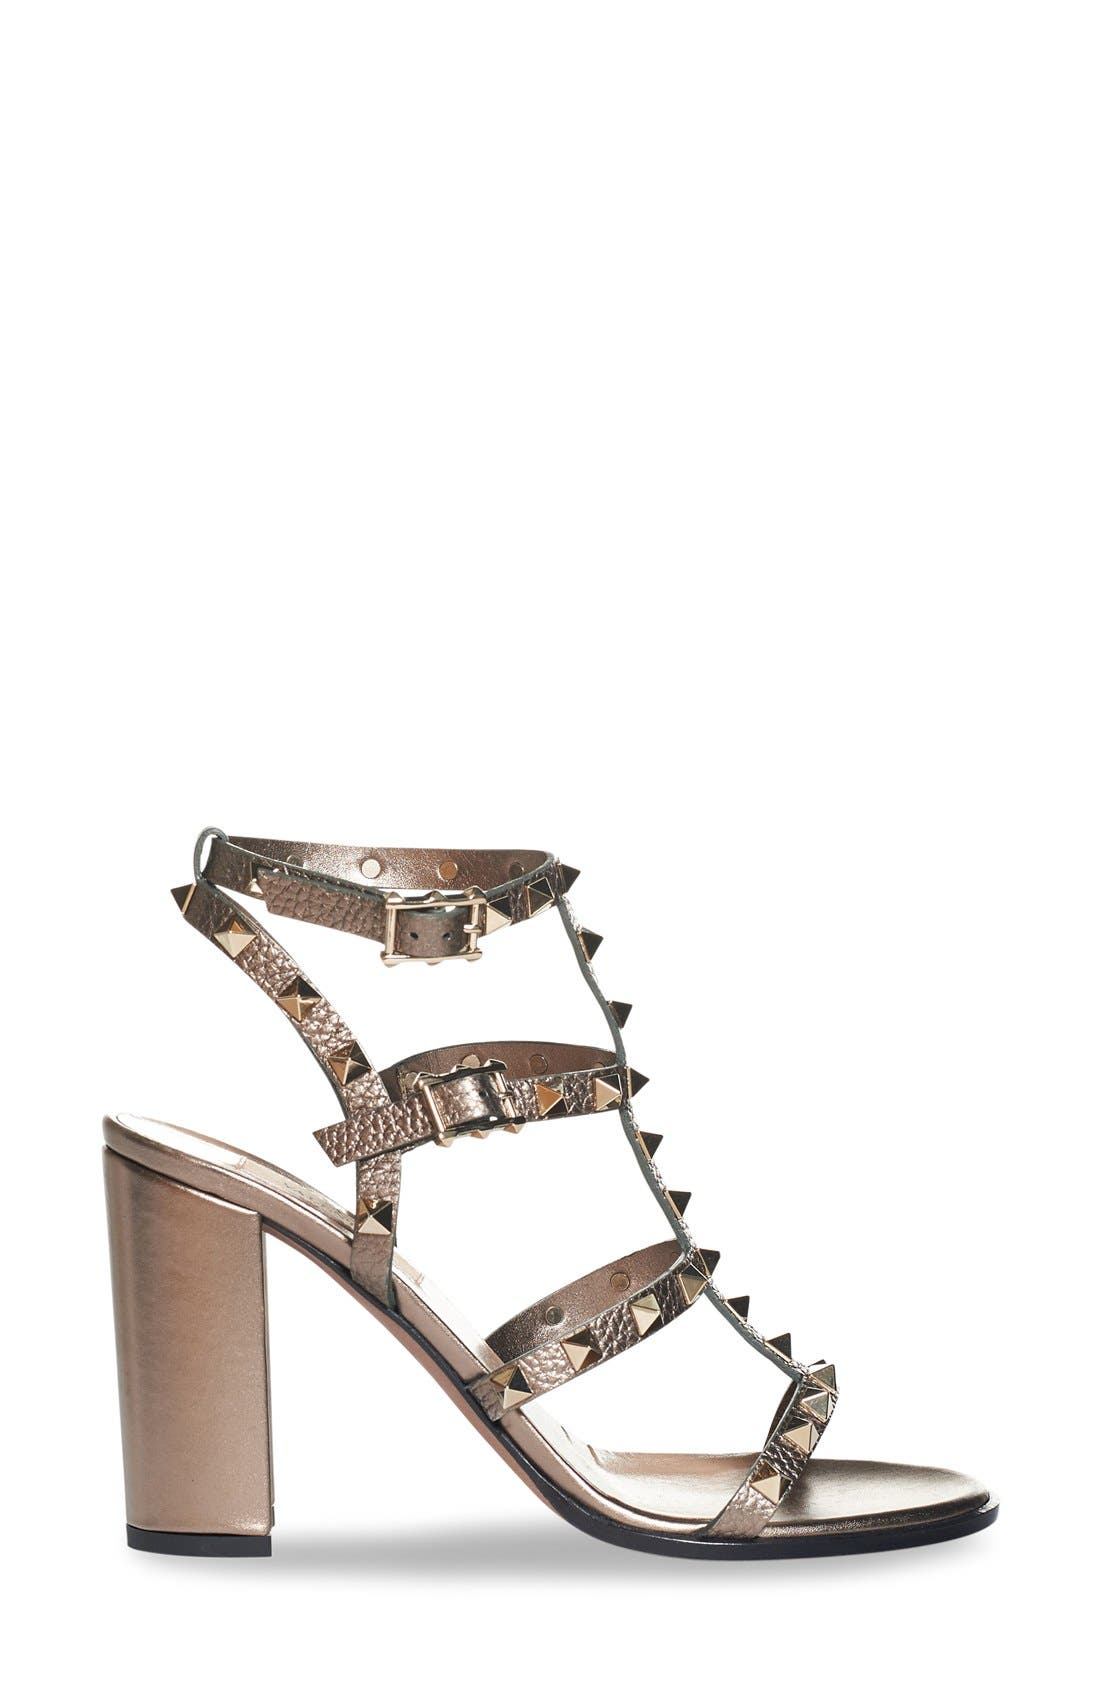 'Rockstud' Cage Sandal,                             Alternate thumbnail 3, color,                             229